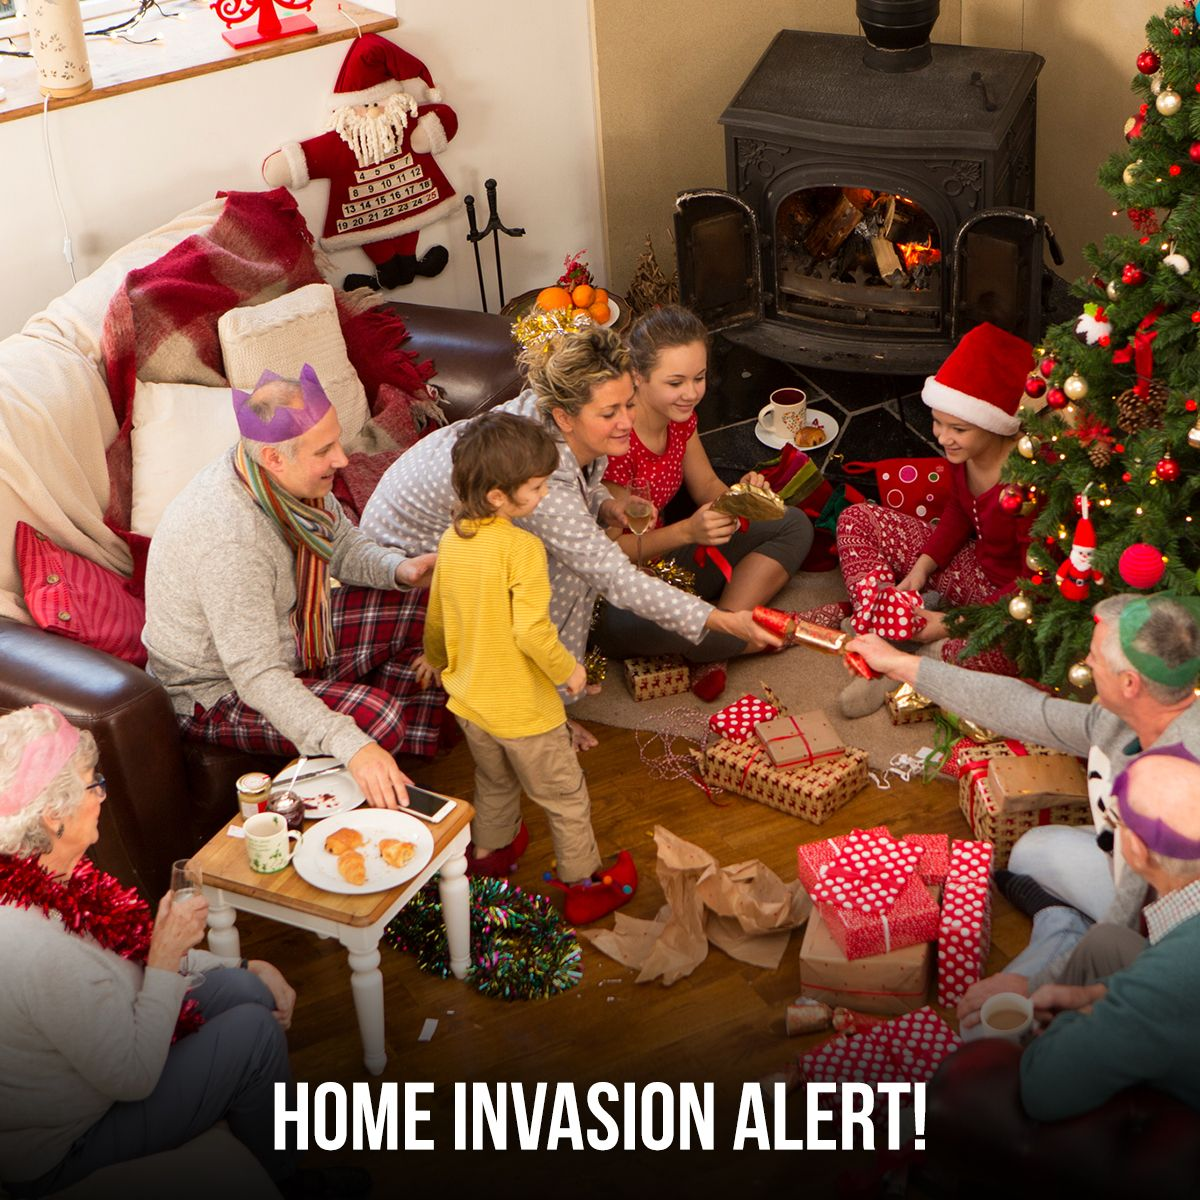 Home Invasion Alert!